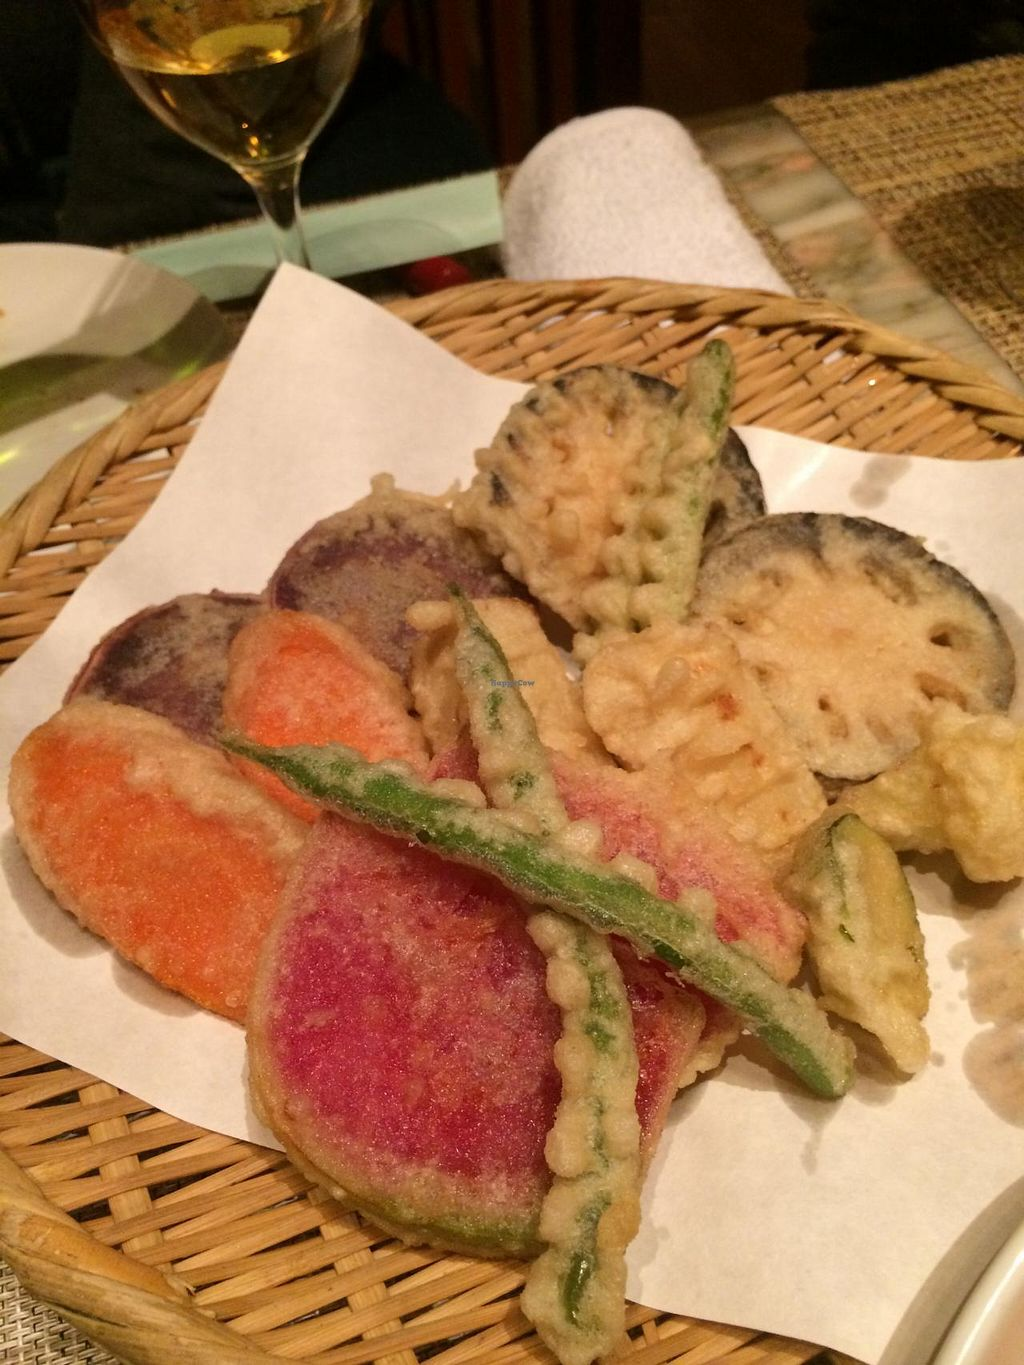 """Photo of Sumi Bio  by <a href=""""/members/profile/Meggie%20and%20Ben"""">Meggie and Ben</a> <br/>Tempura vegetables <br/> December 31, 2014  - <a href='/contact/abuse/image/43772/89114'>Report</a>"""